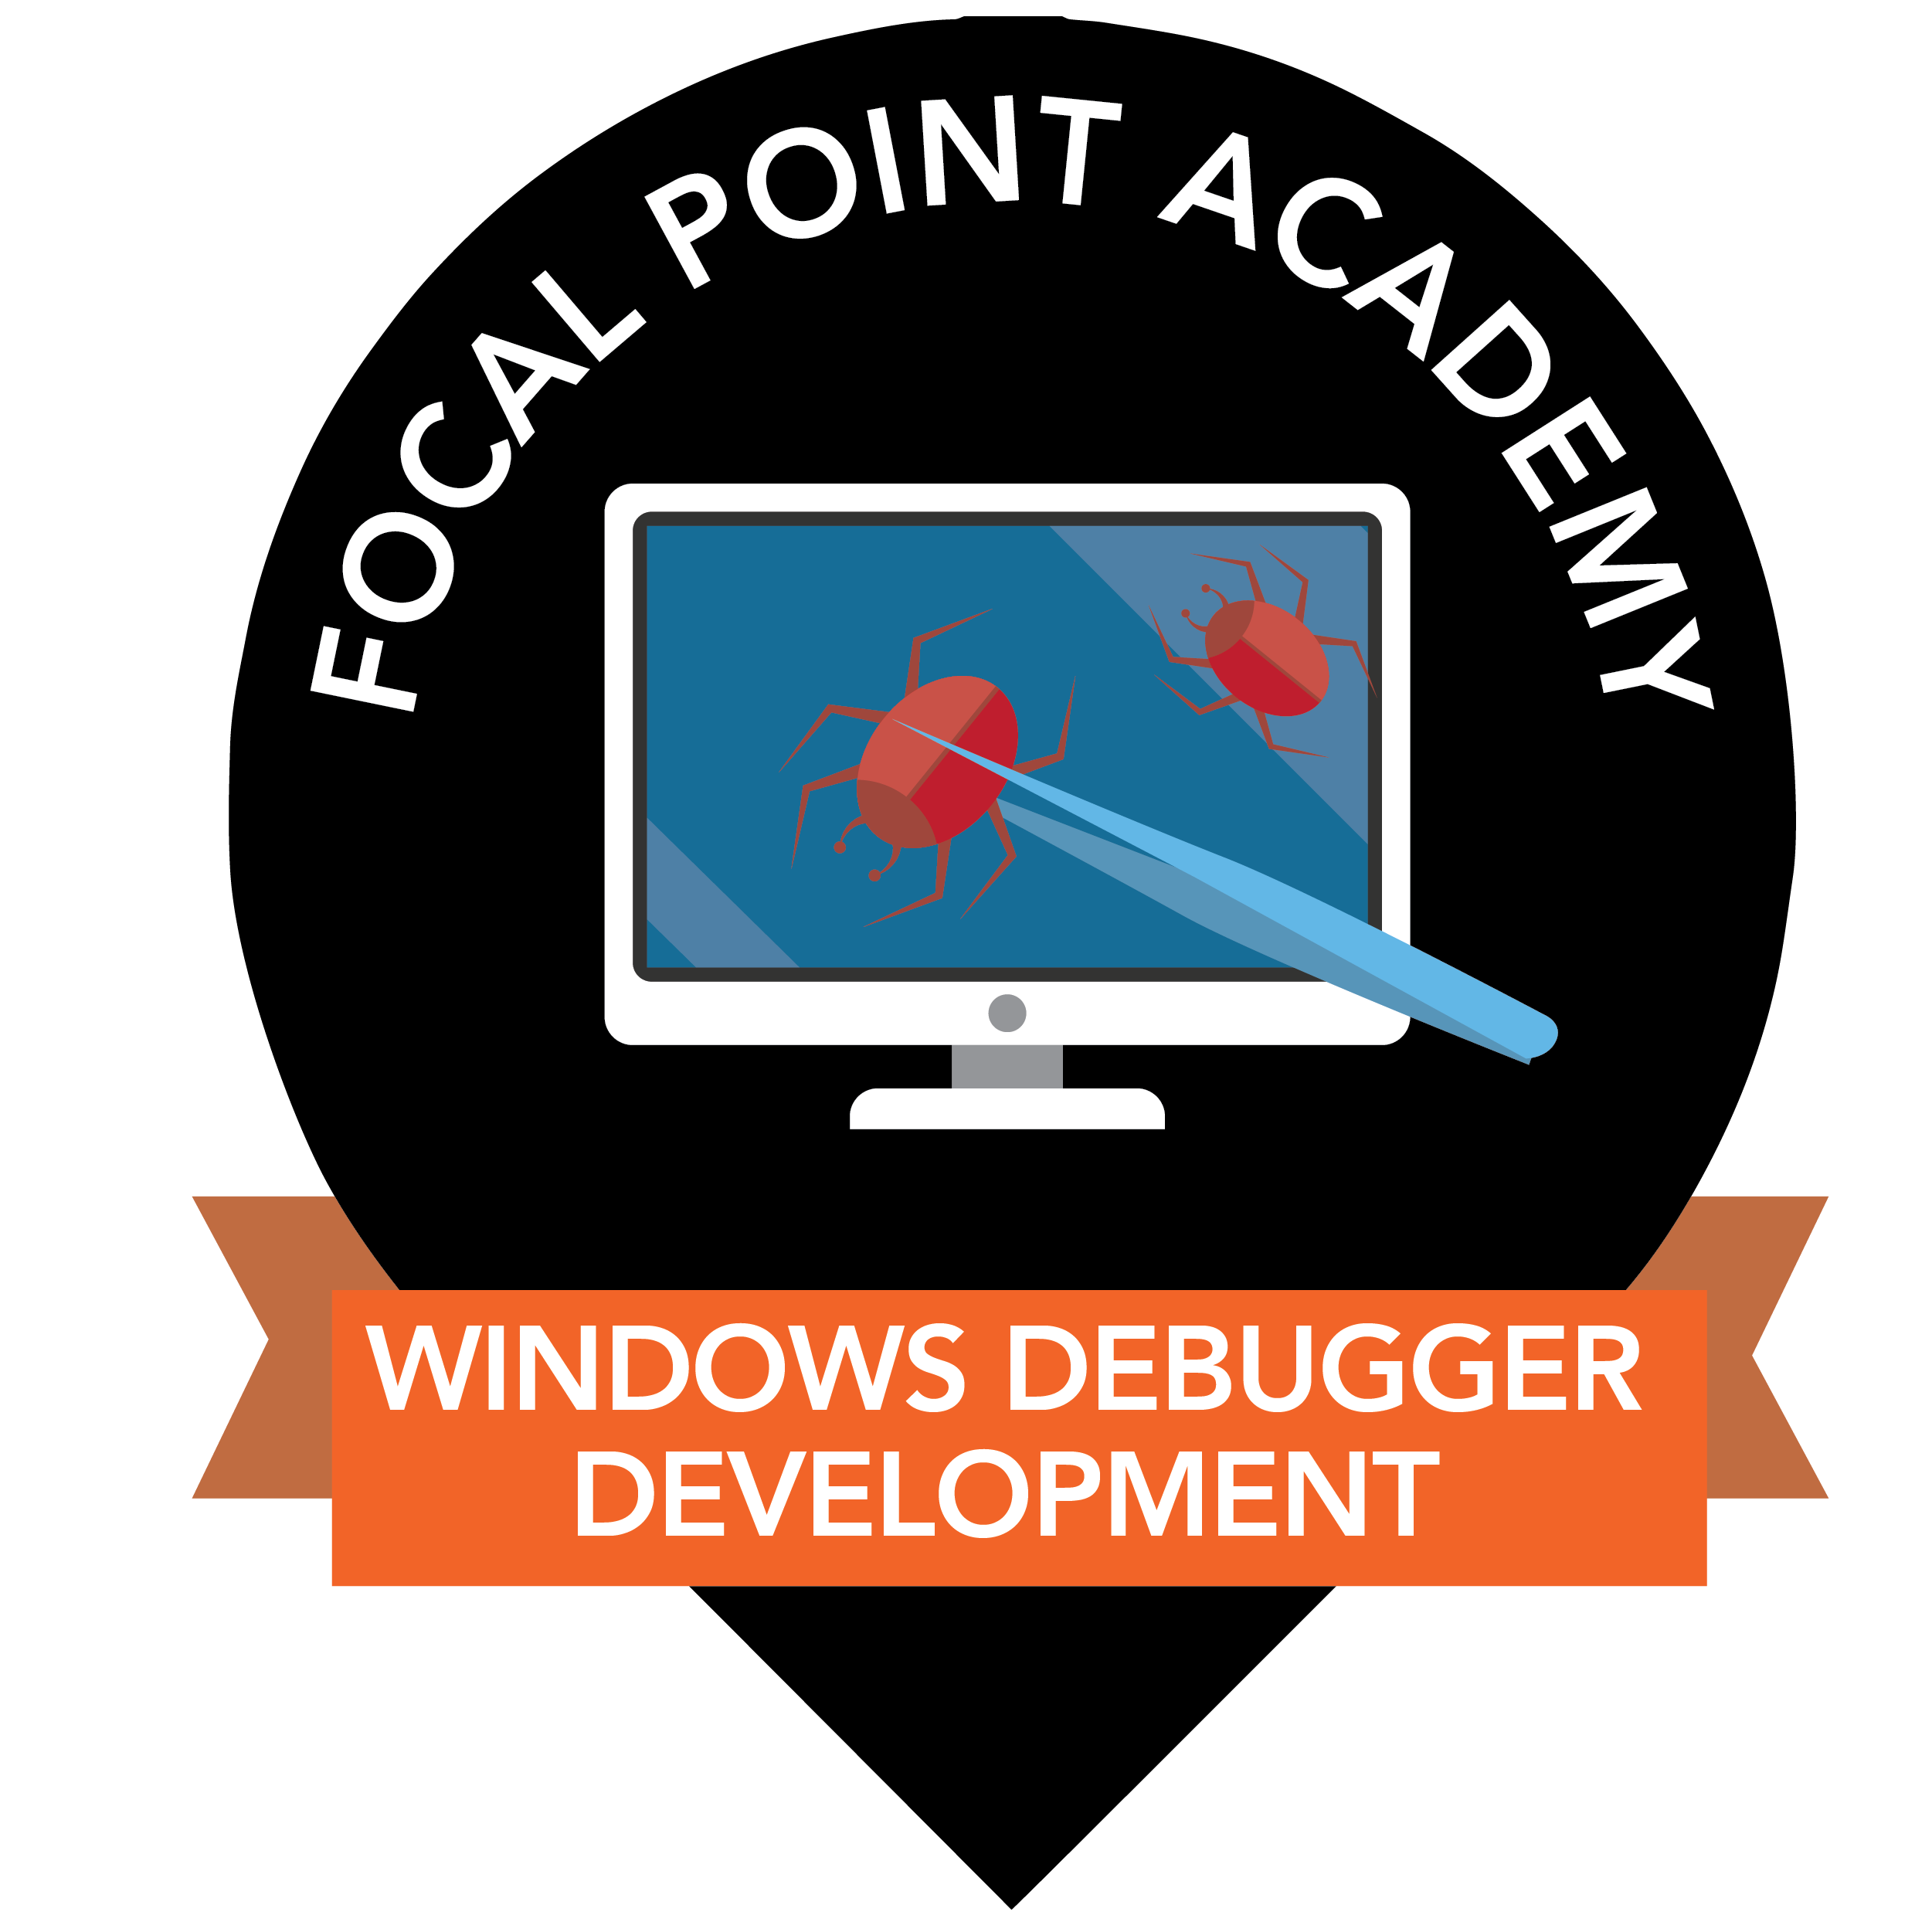 Windows Debugger Development